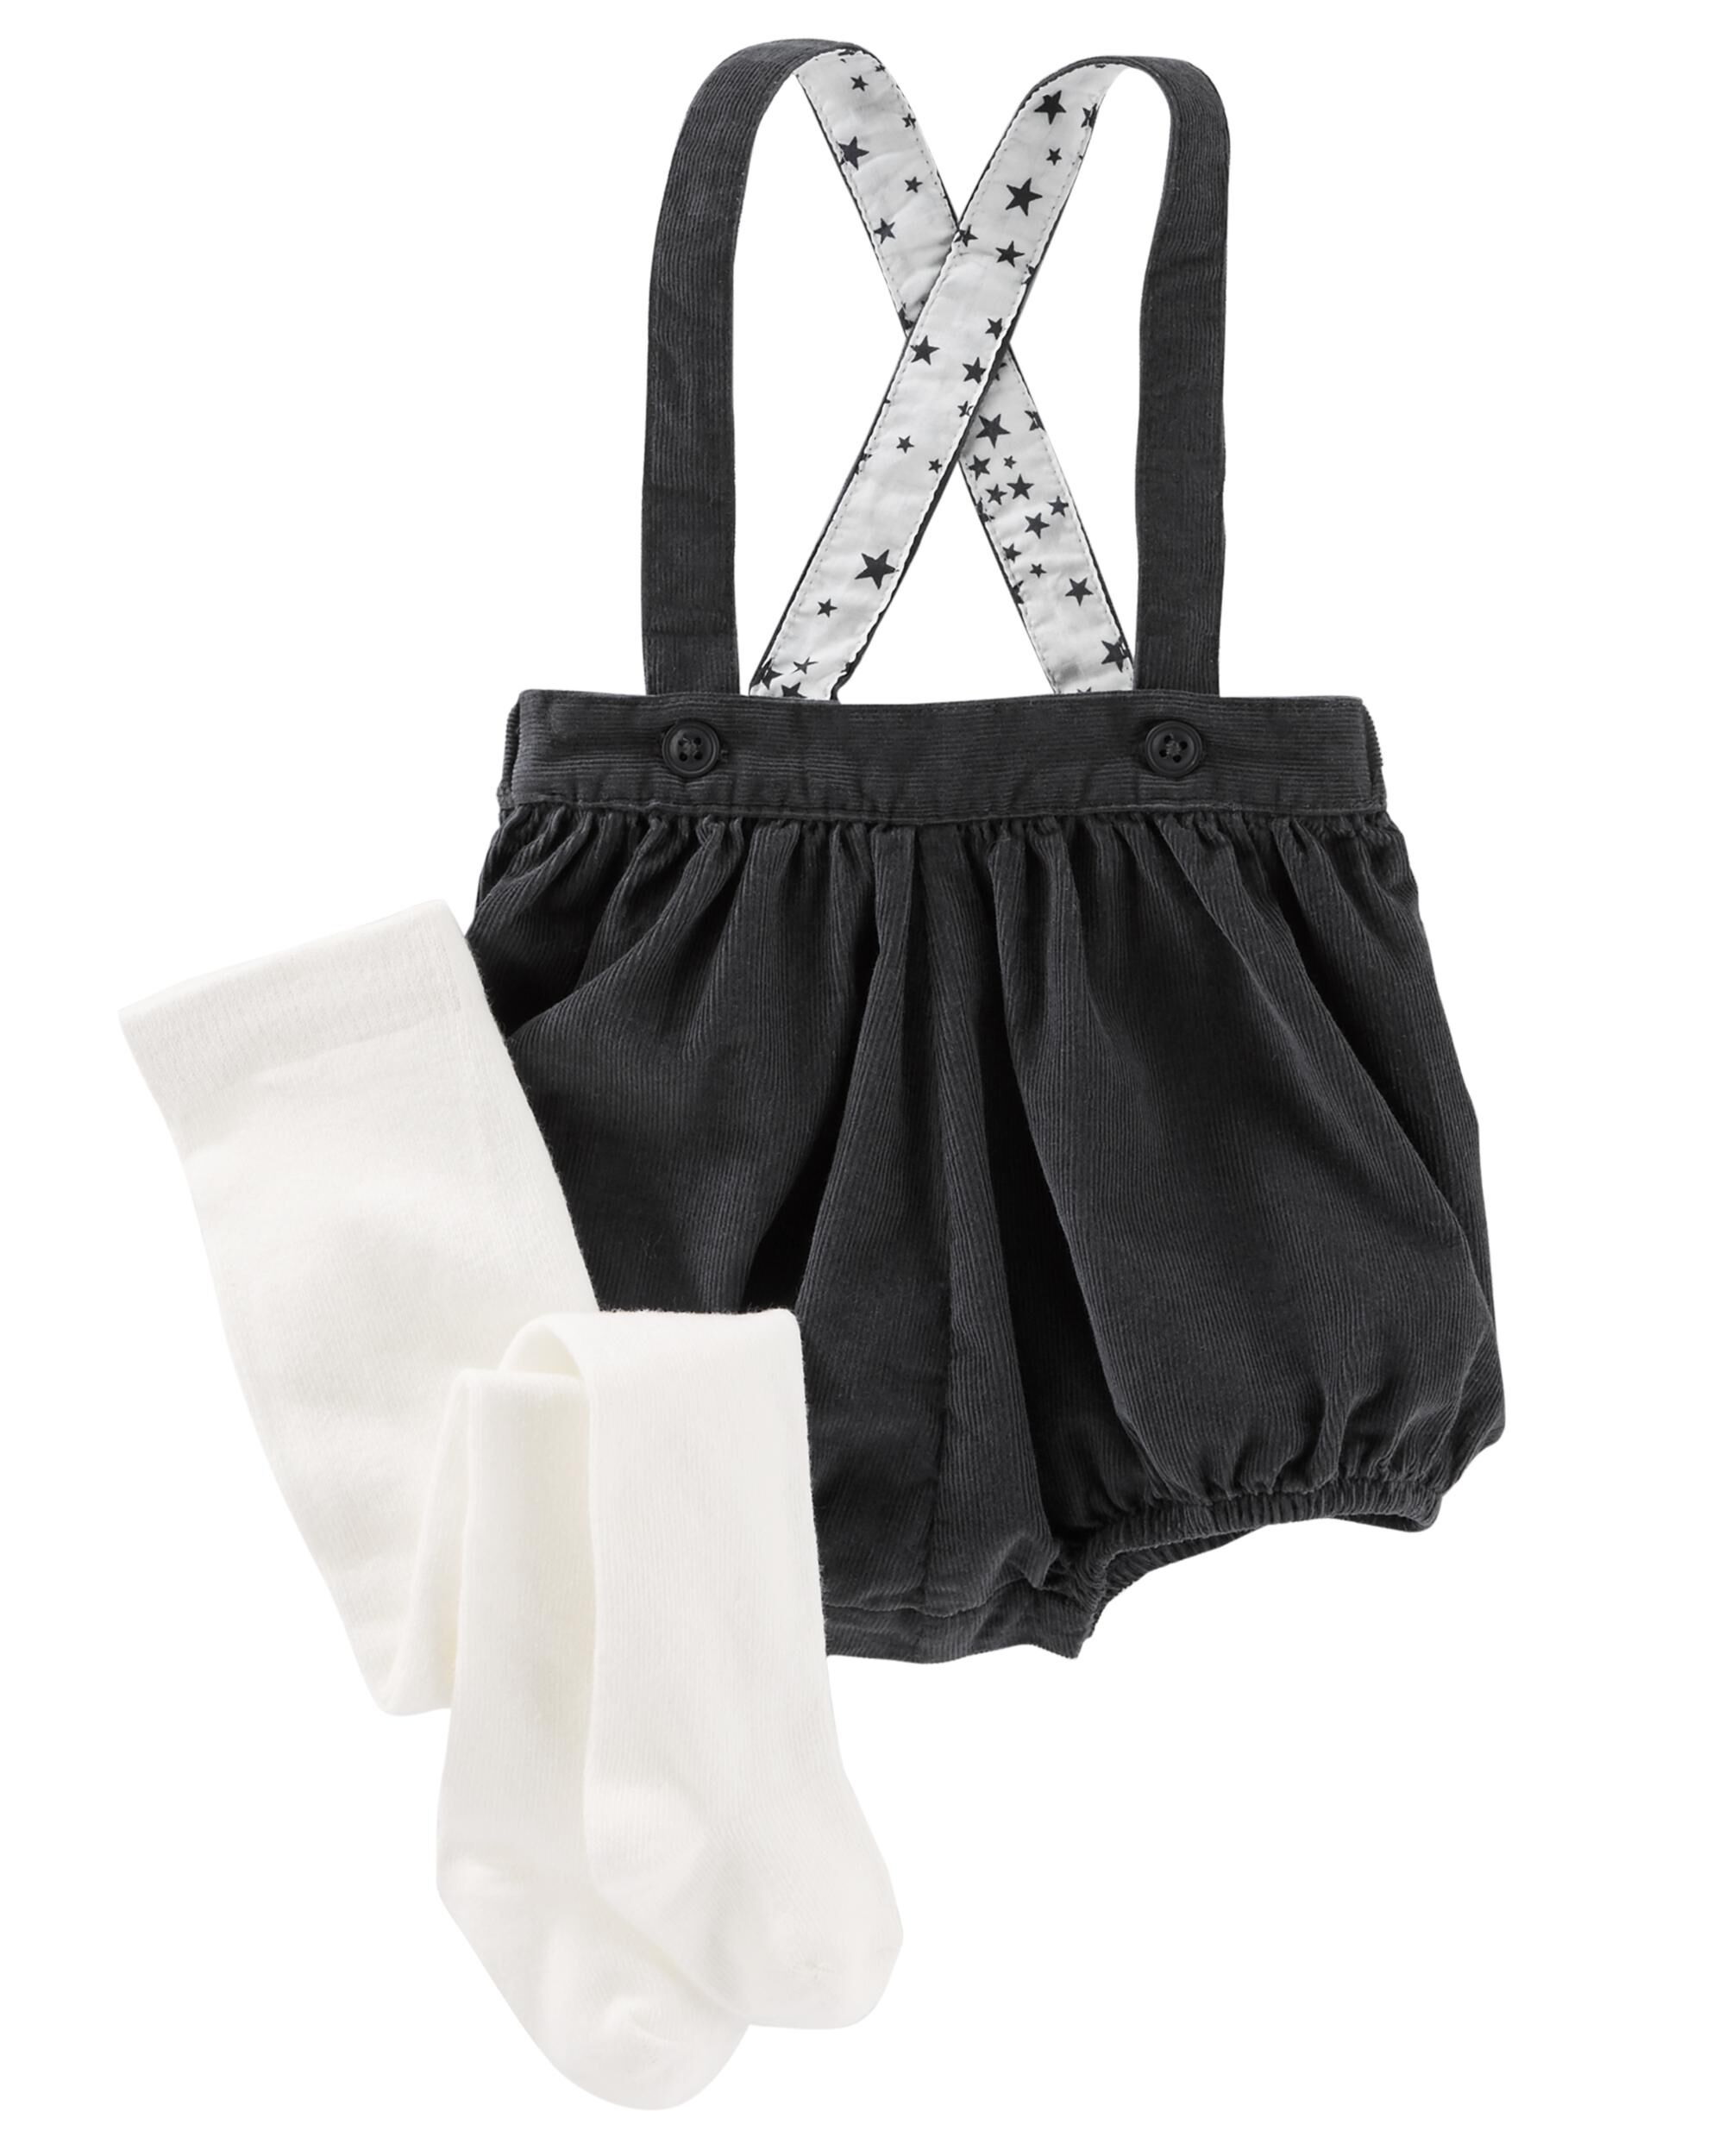 8b31922dd73 2-Piece Tights   Suspender Bubble Shorts. Loading zoom